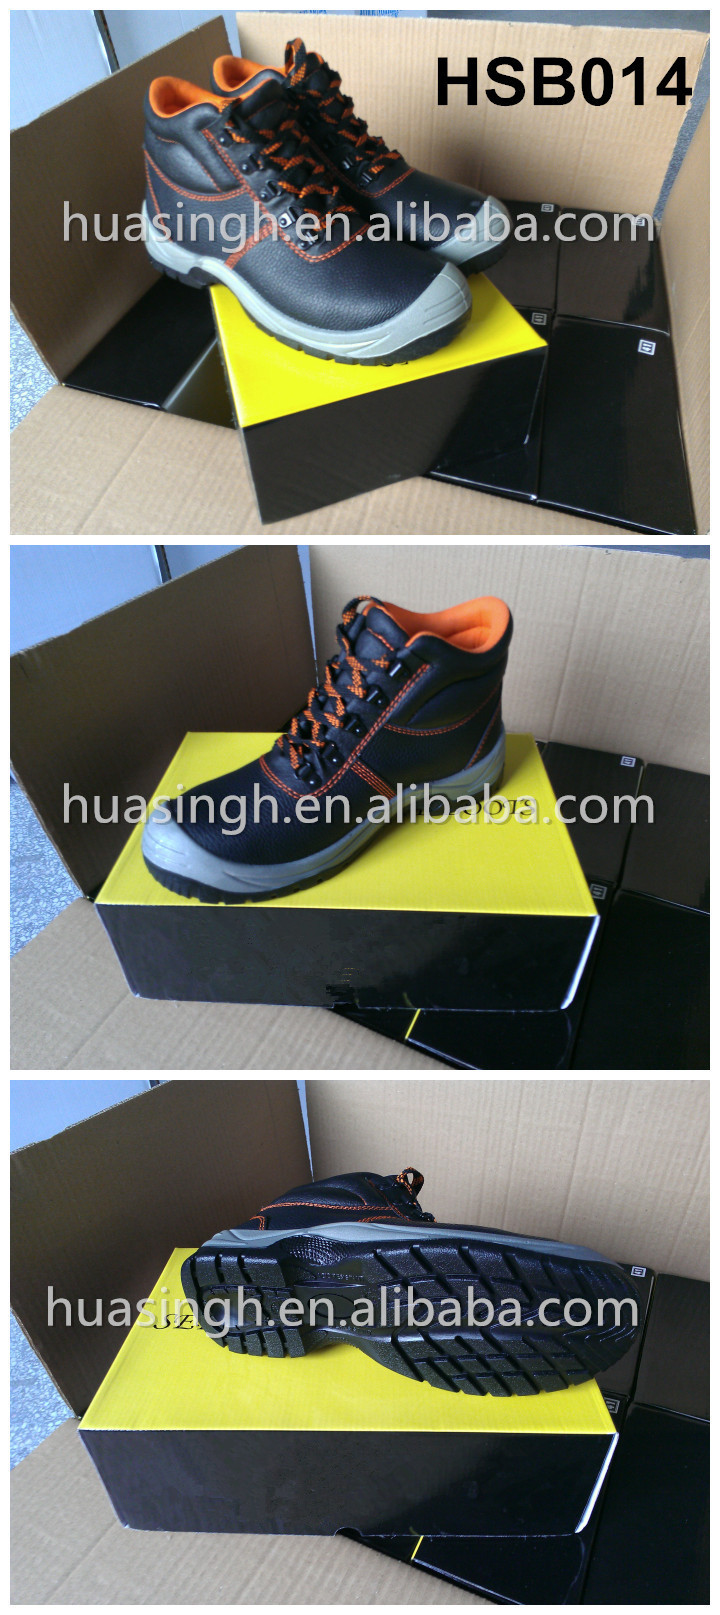 durable quality approved widely used work time safety boots S3 standard